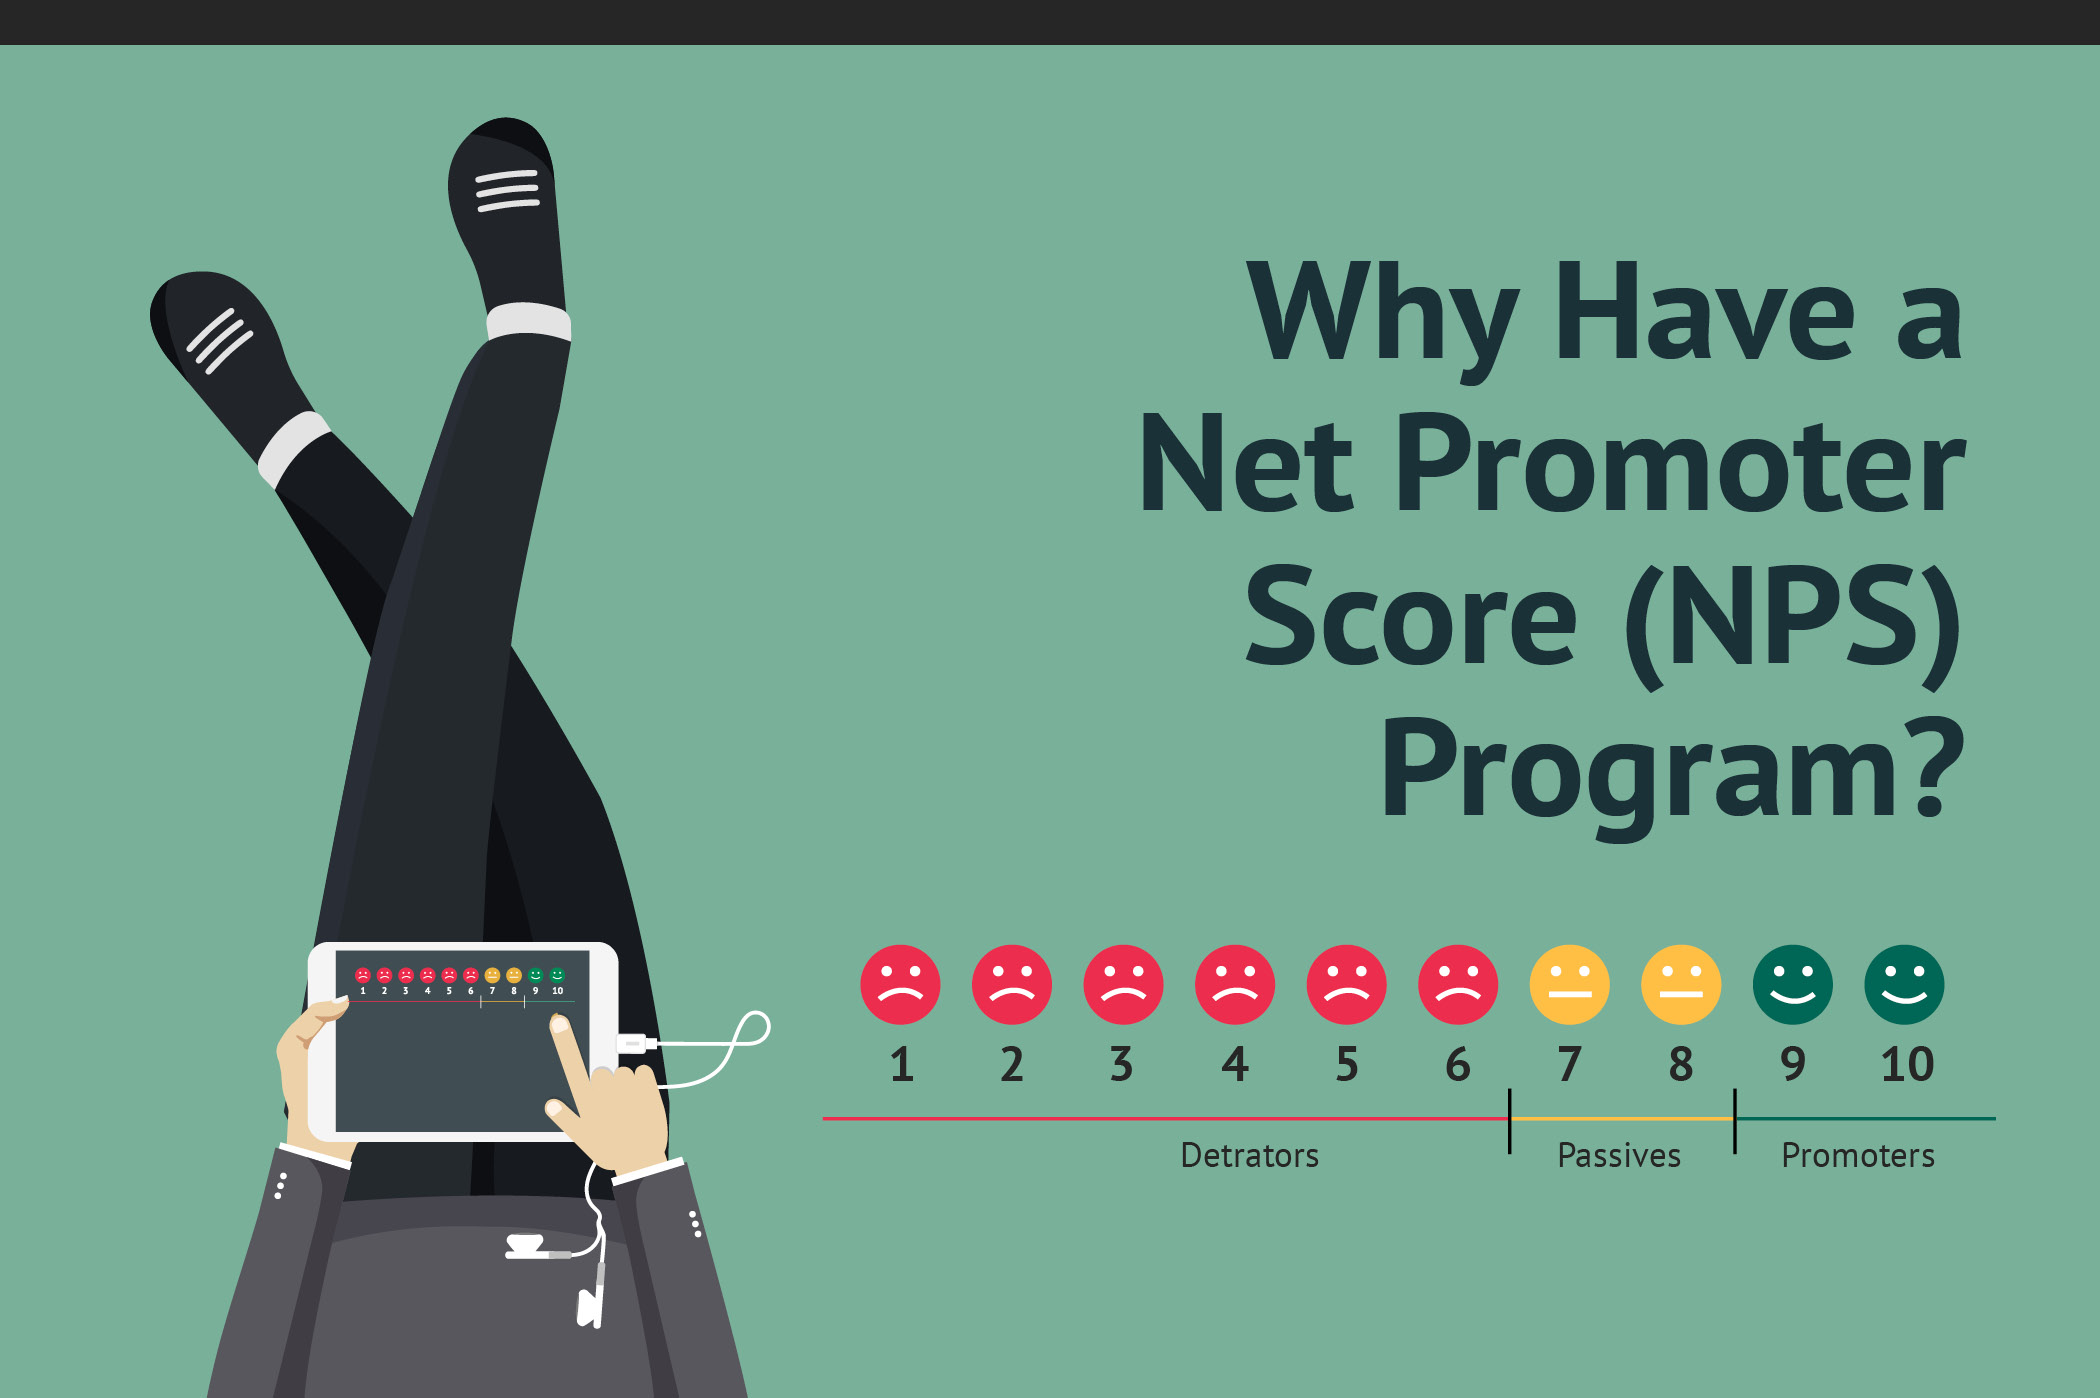 Why Have a Net Promoter Score (NPS) Program?